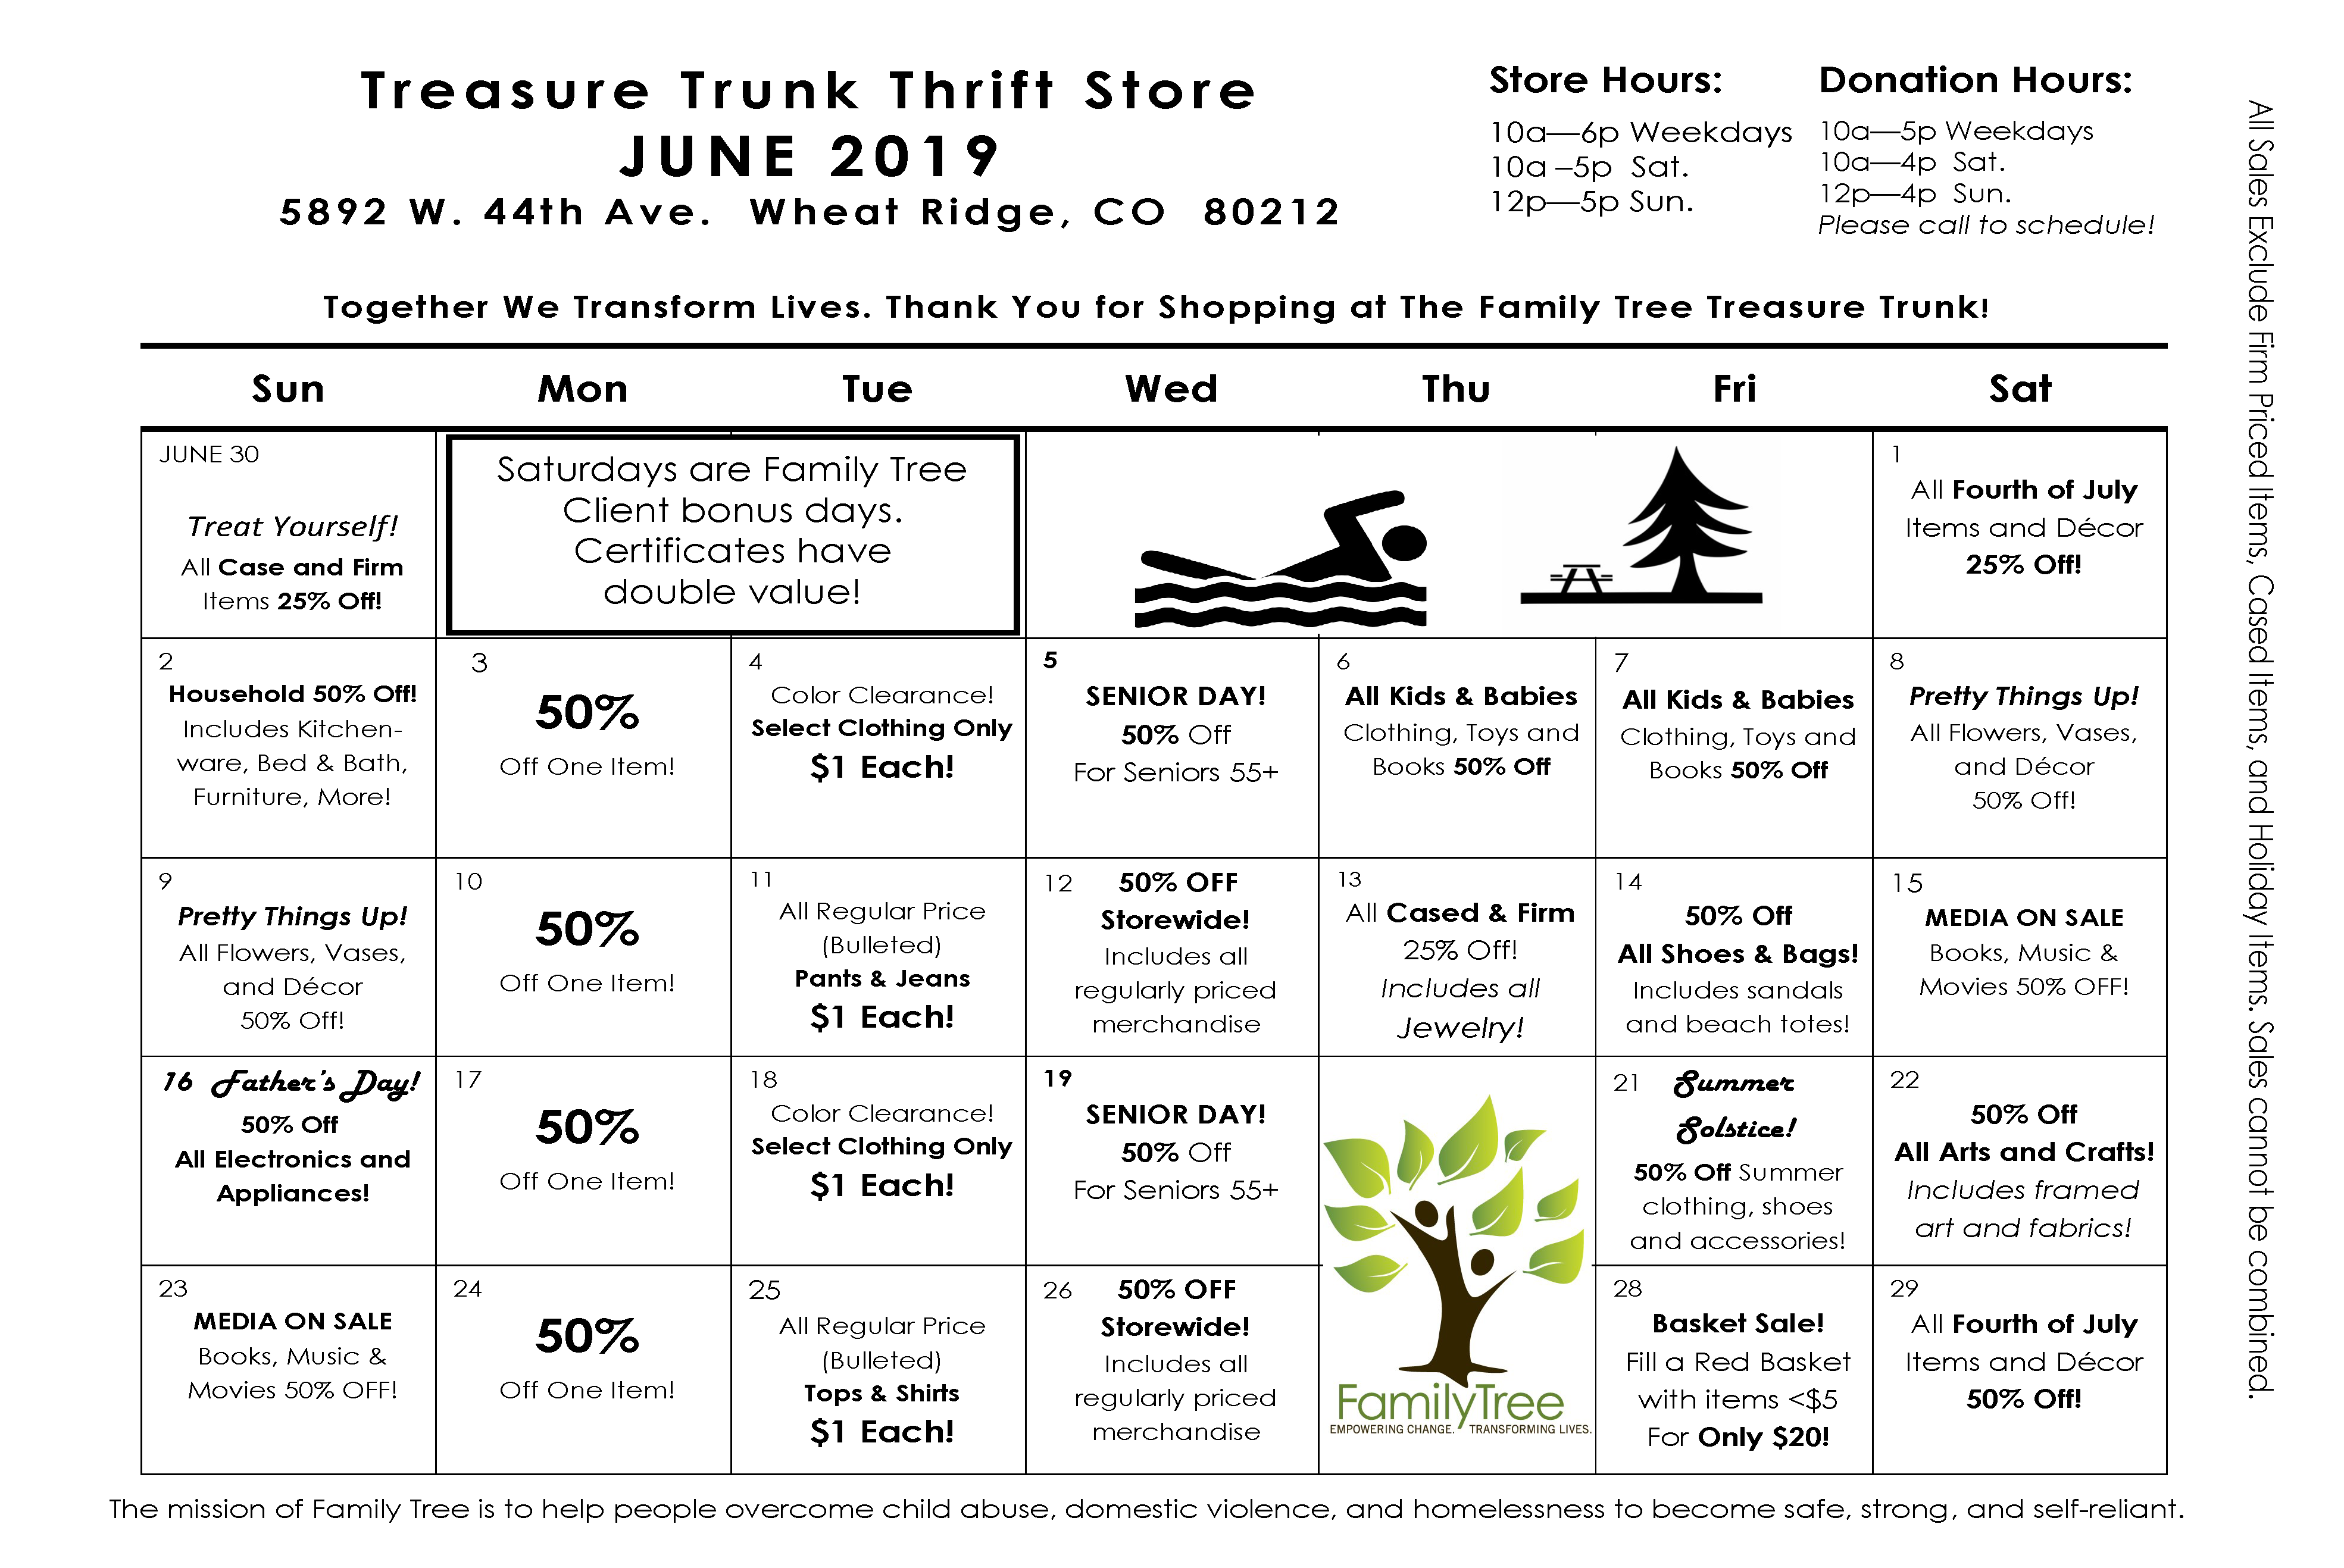 June Treasure Trunk Community Thrift Calendar